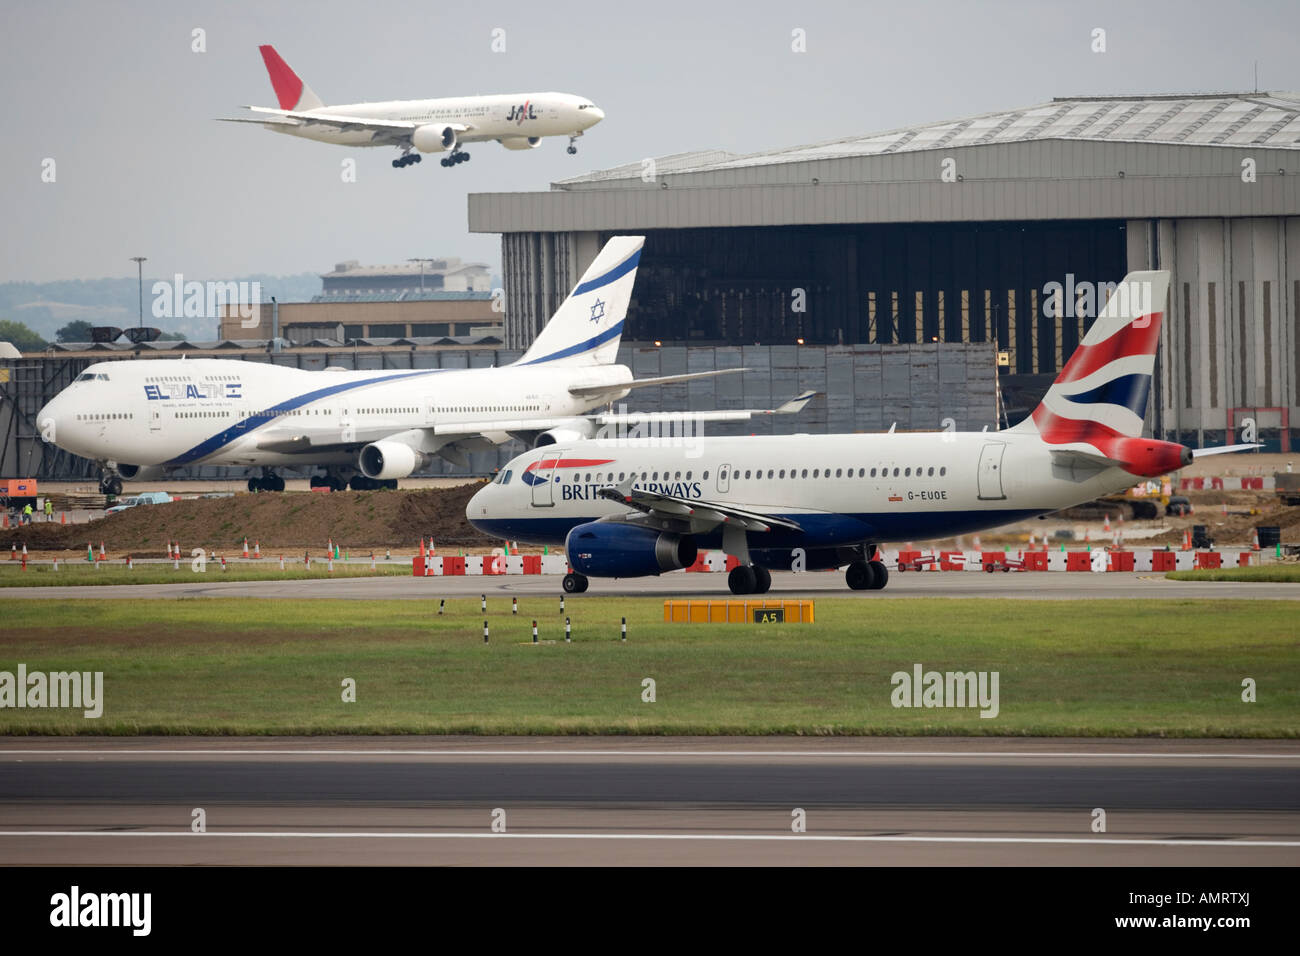 BA British Airways airbus a320 landing at London Heathrow airport LHR Stock Photo